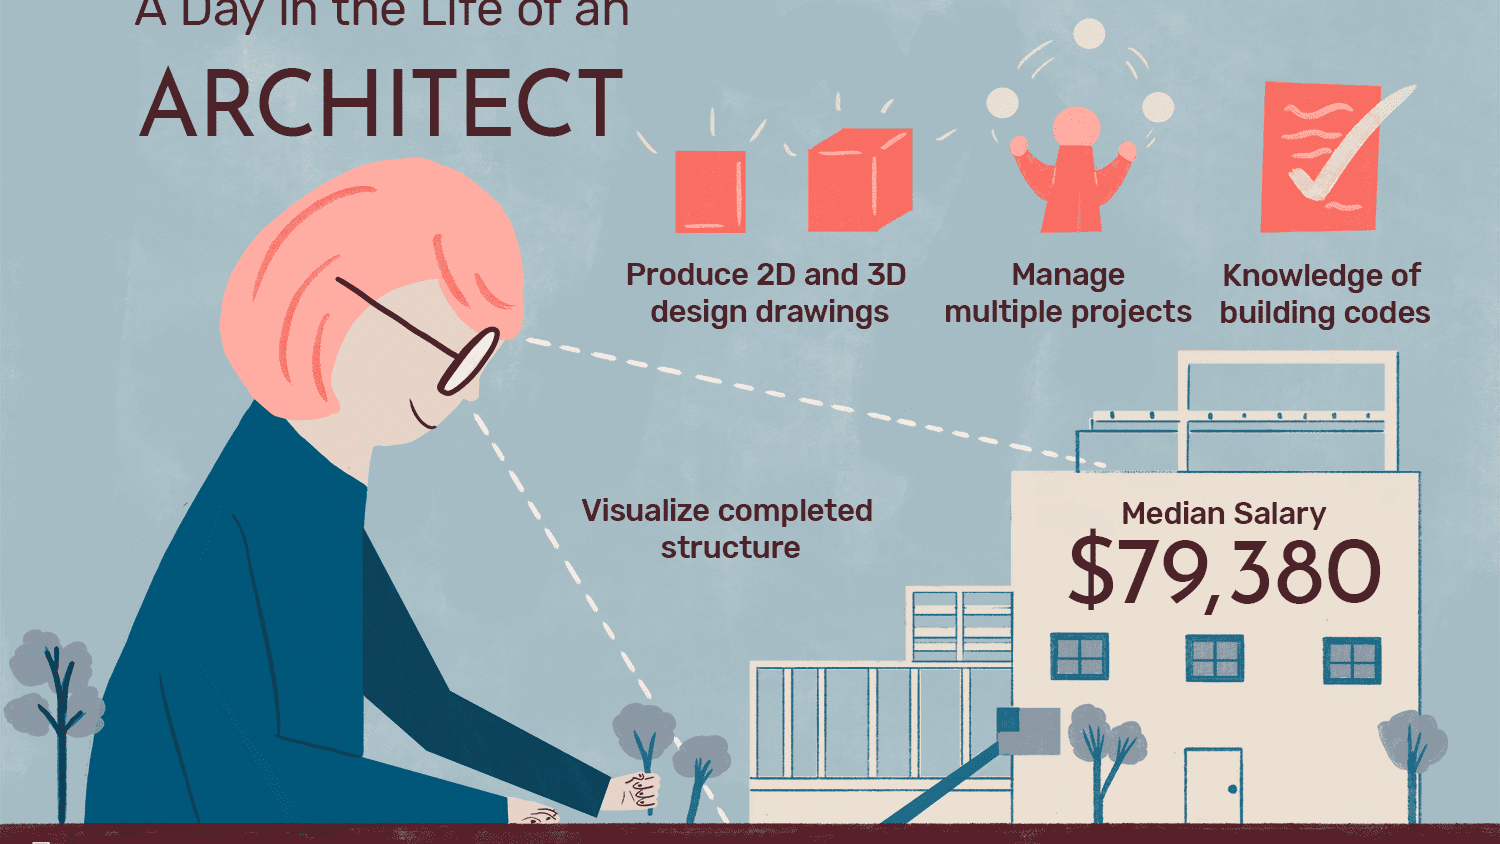 Architect Job Description Salary Skills More